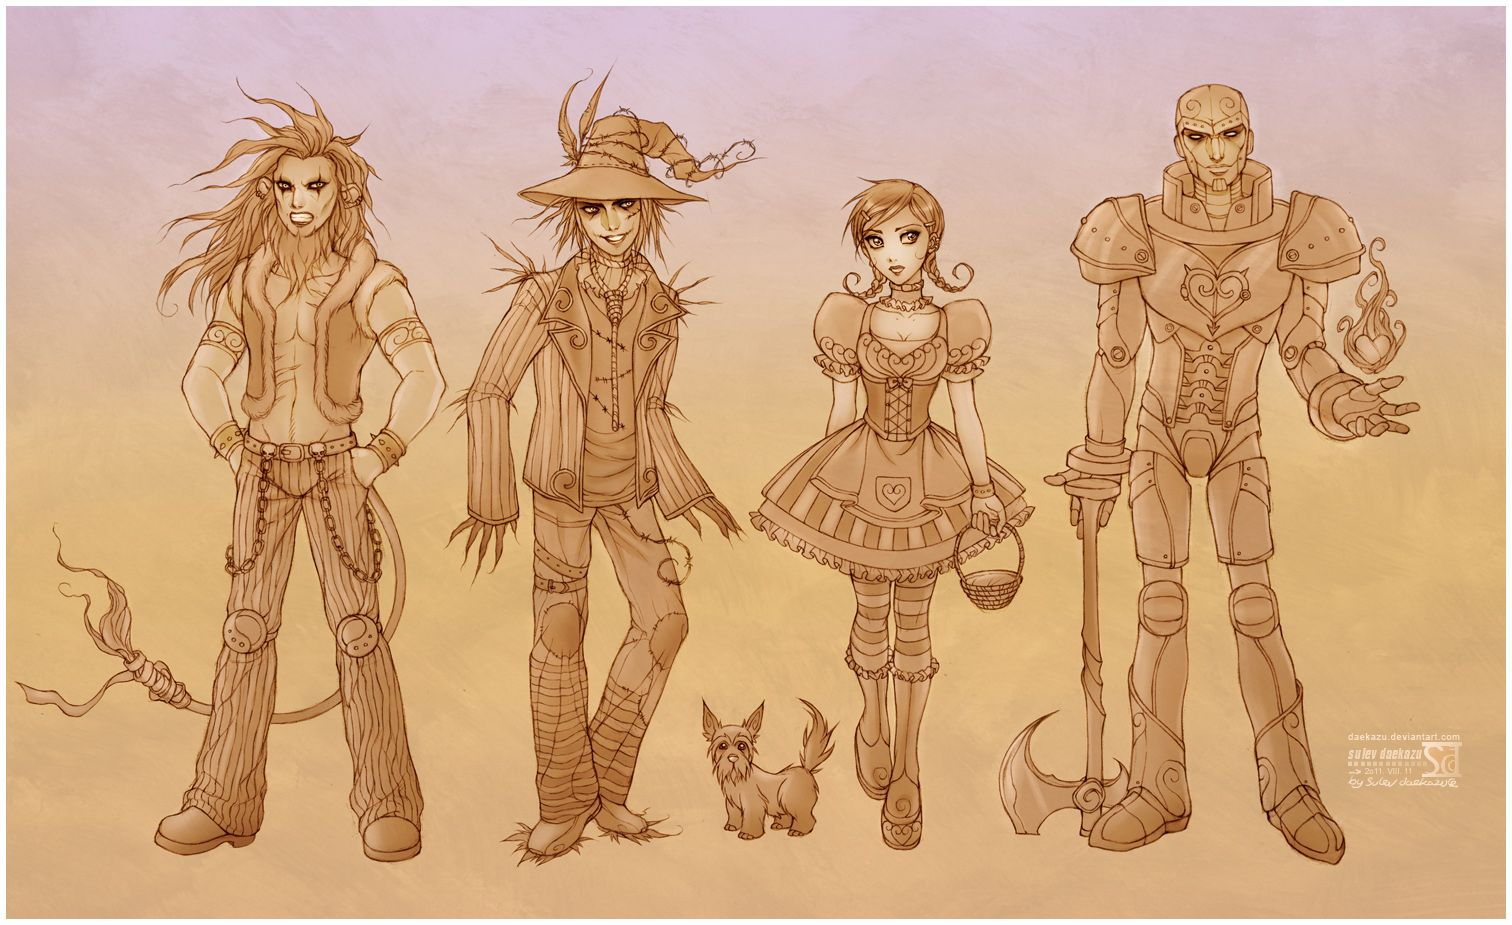 Wonderful Wizard of OZ by daekazu.deviantart.com on @deviantART. Fan art created with Photoshop by daekazu